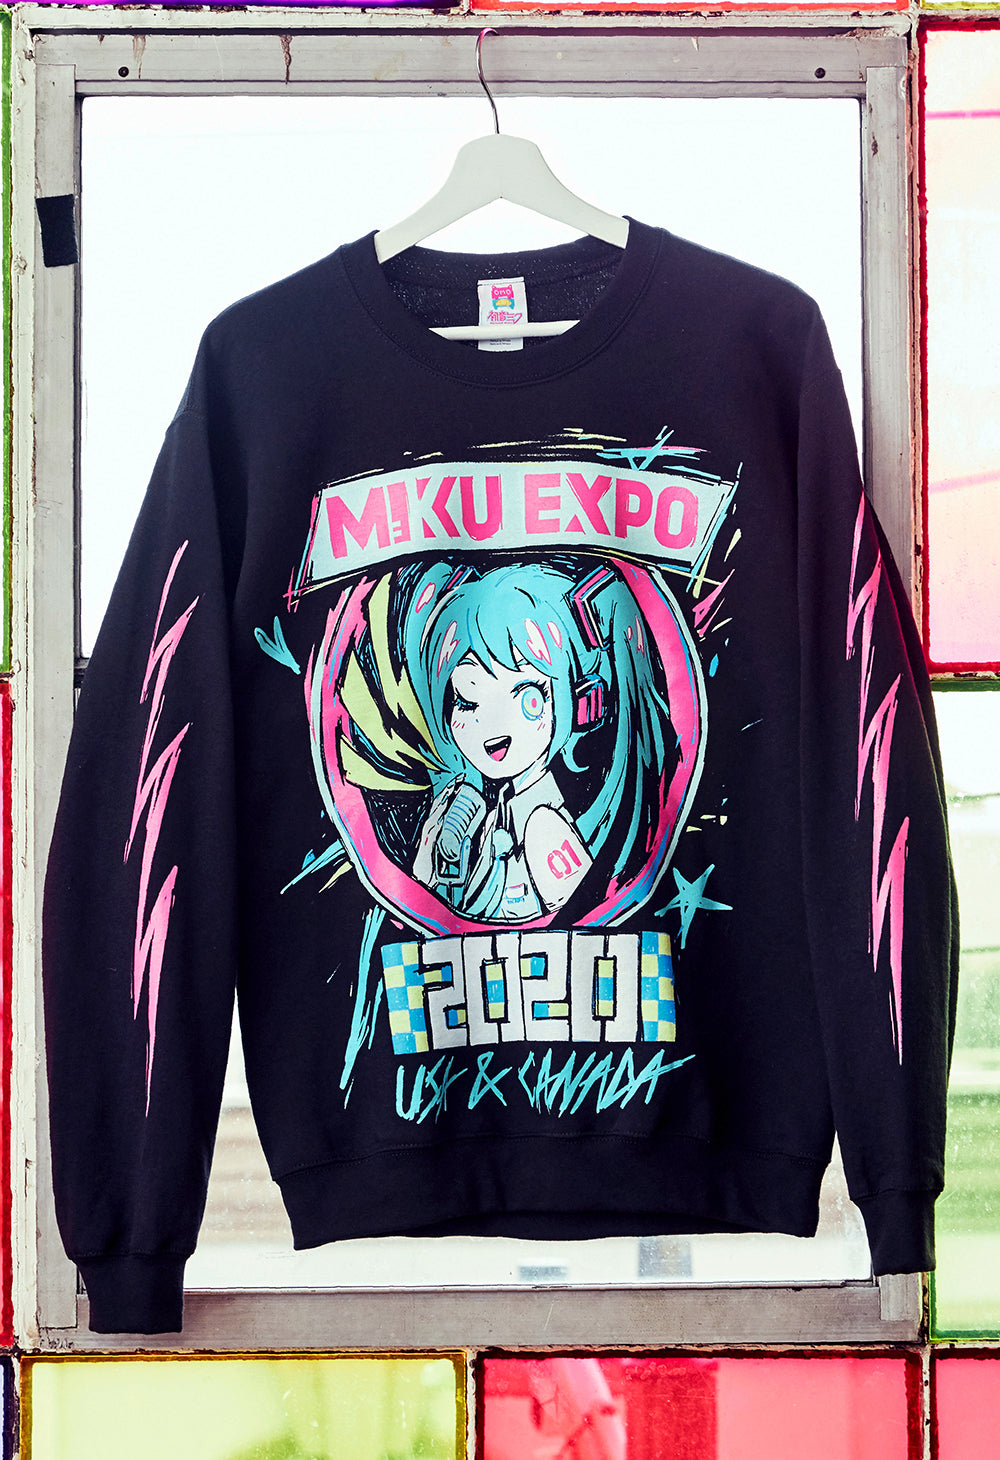 MIKU EXPO 2020 Sweater